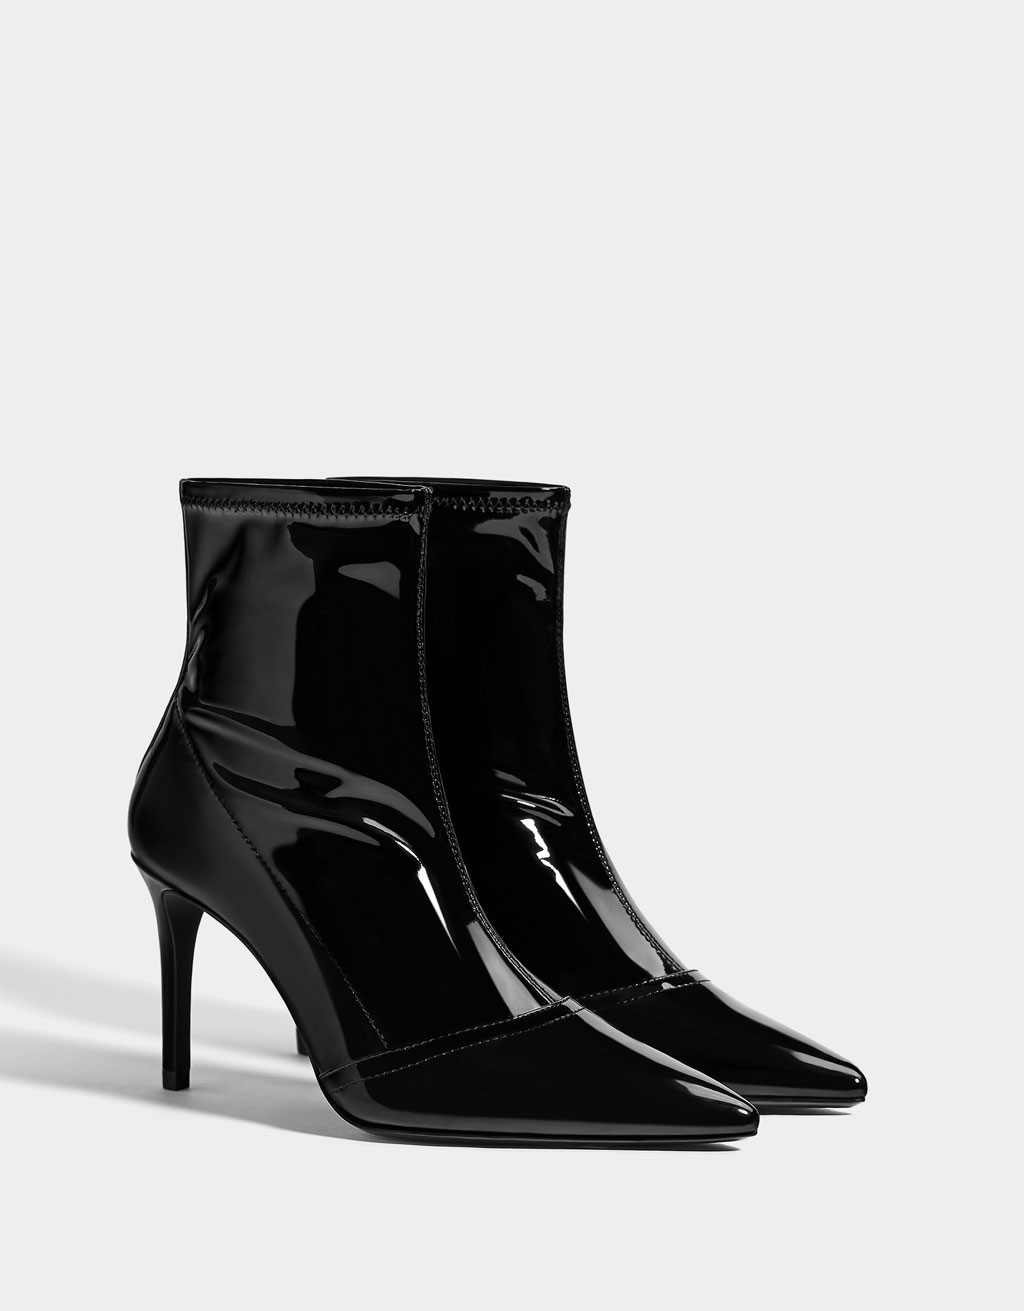 Faux patent leather stiletto-heel boots